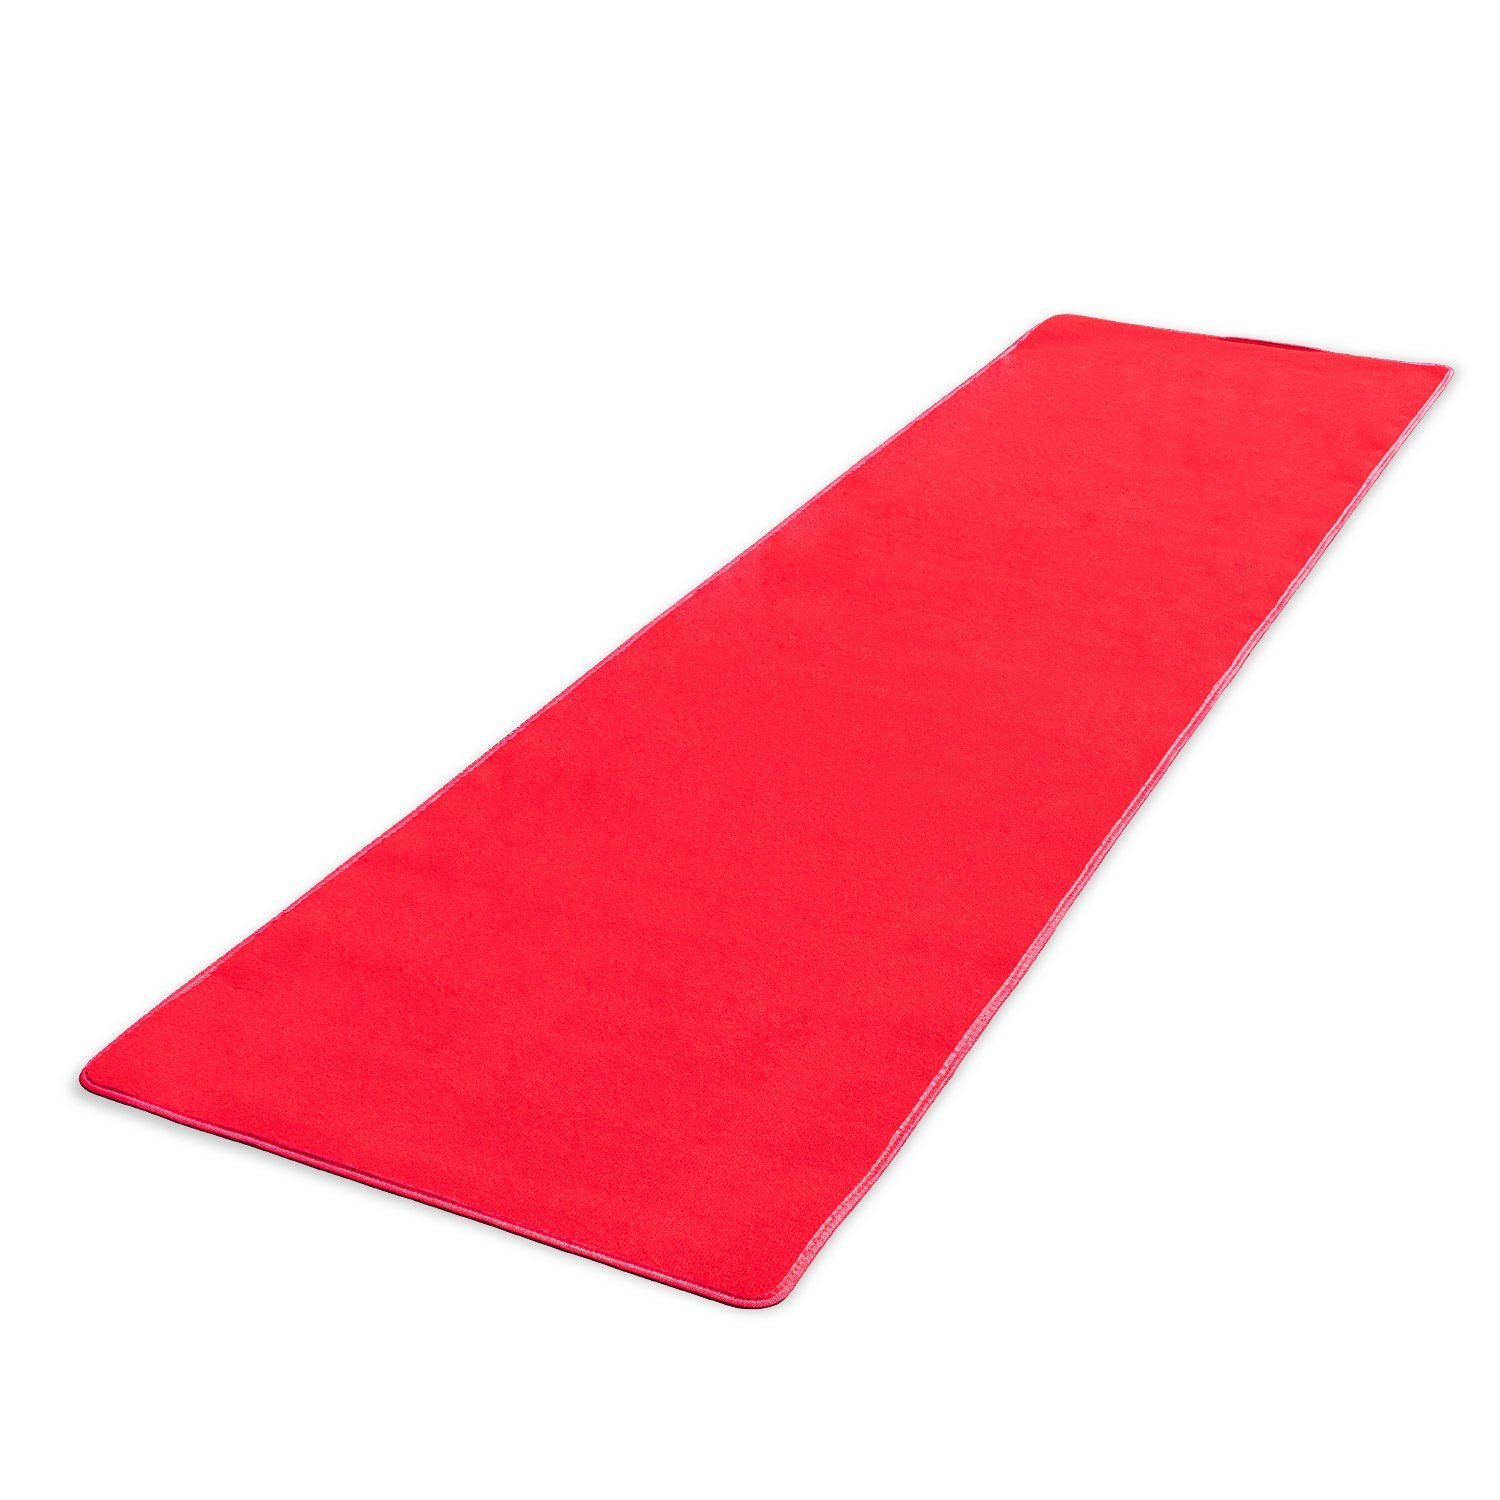 SOURCEONE.ORG Source One Premium Red Carpet Aisle Runner, Multiple, Perfect for Weddings, Parties and Special Occasions (3 Feet x 10 Feet, Red) by SOURCEONE.ORG